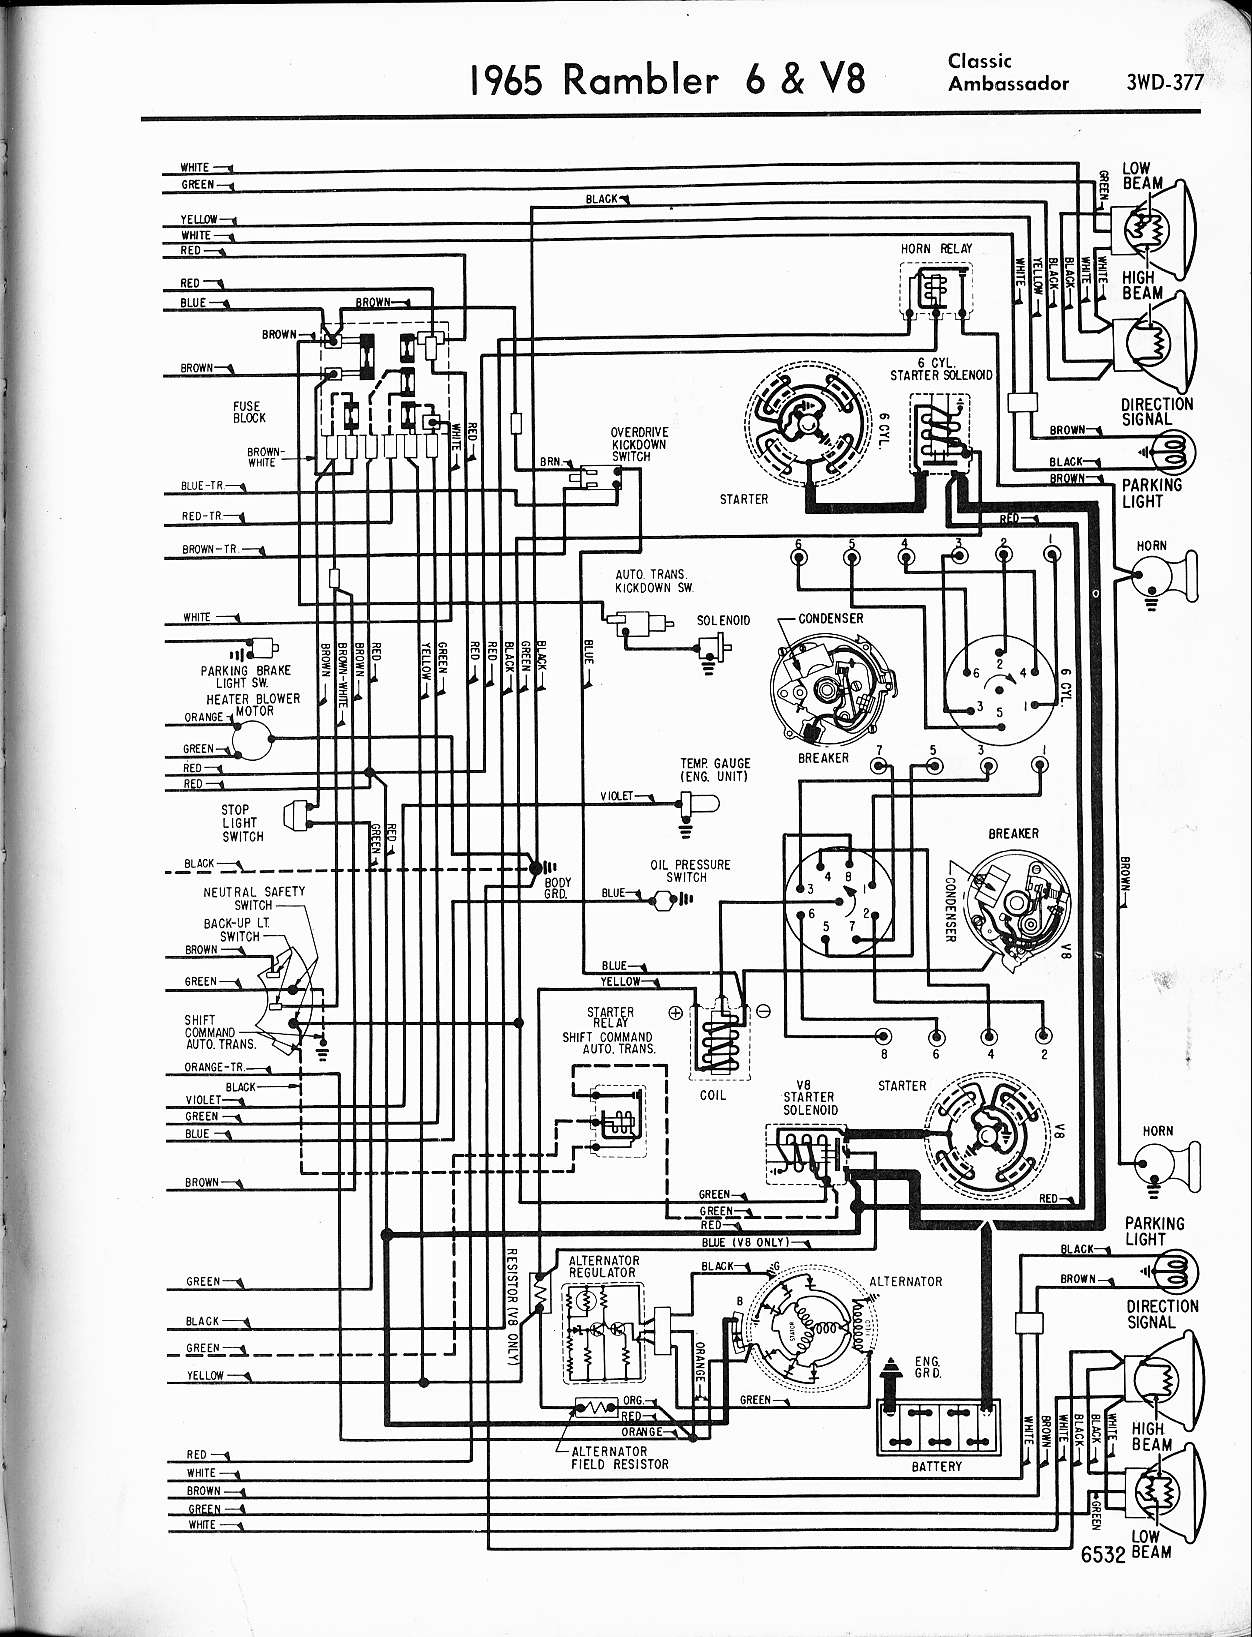 Back Up Light Switch 65 Classic The Amc Forum Page 1 border=